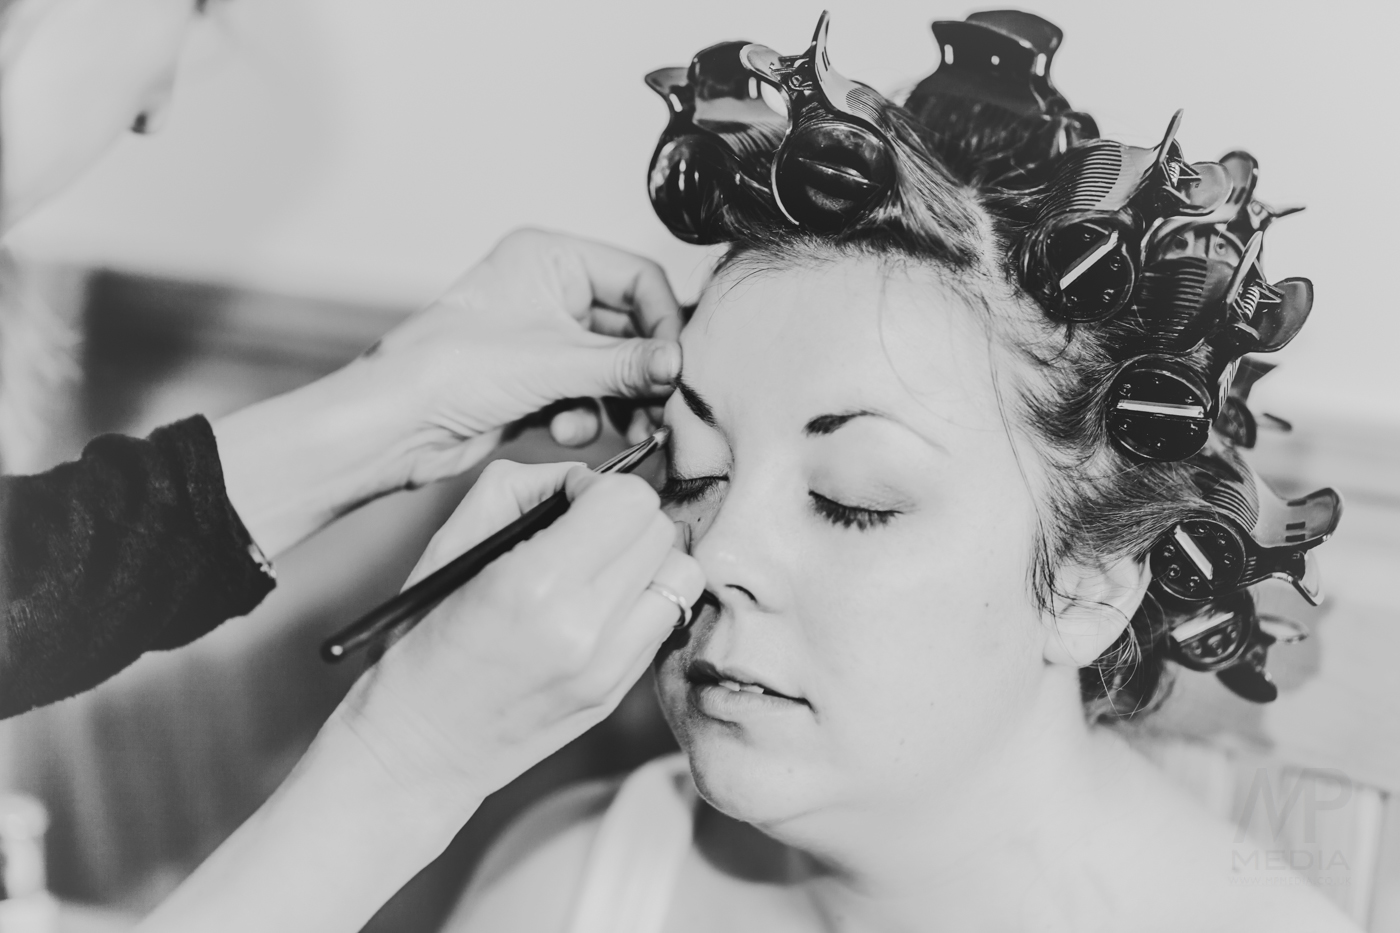 021 - Chris and Natalies Wedding (MAIN) - DO NOT SHARE THIS IMAGES ONLINE -2.JPG